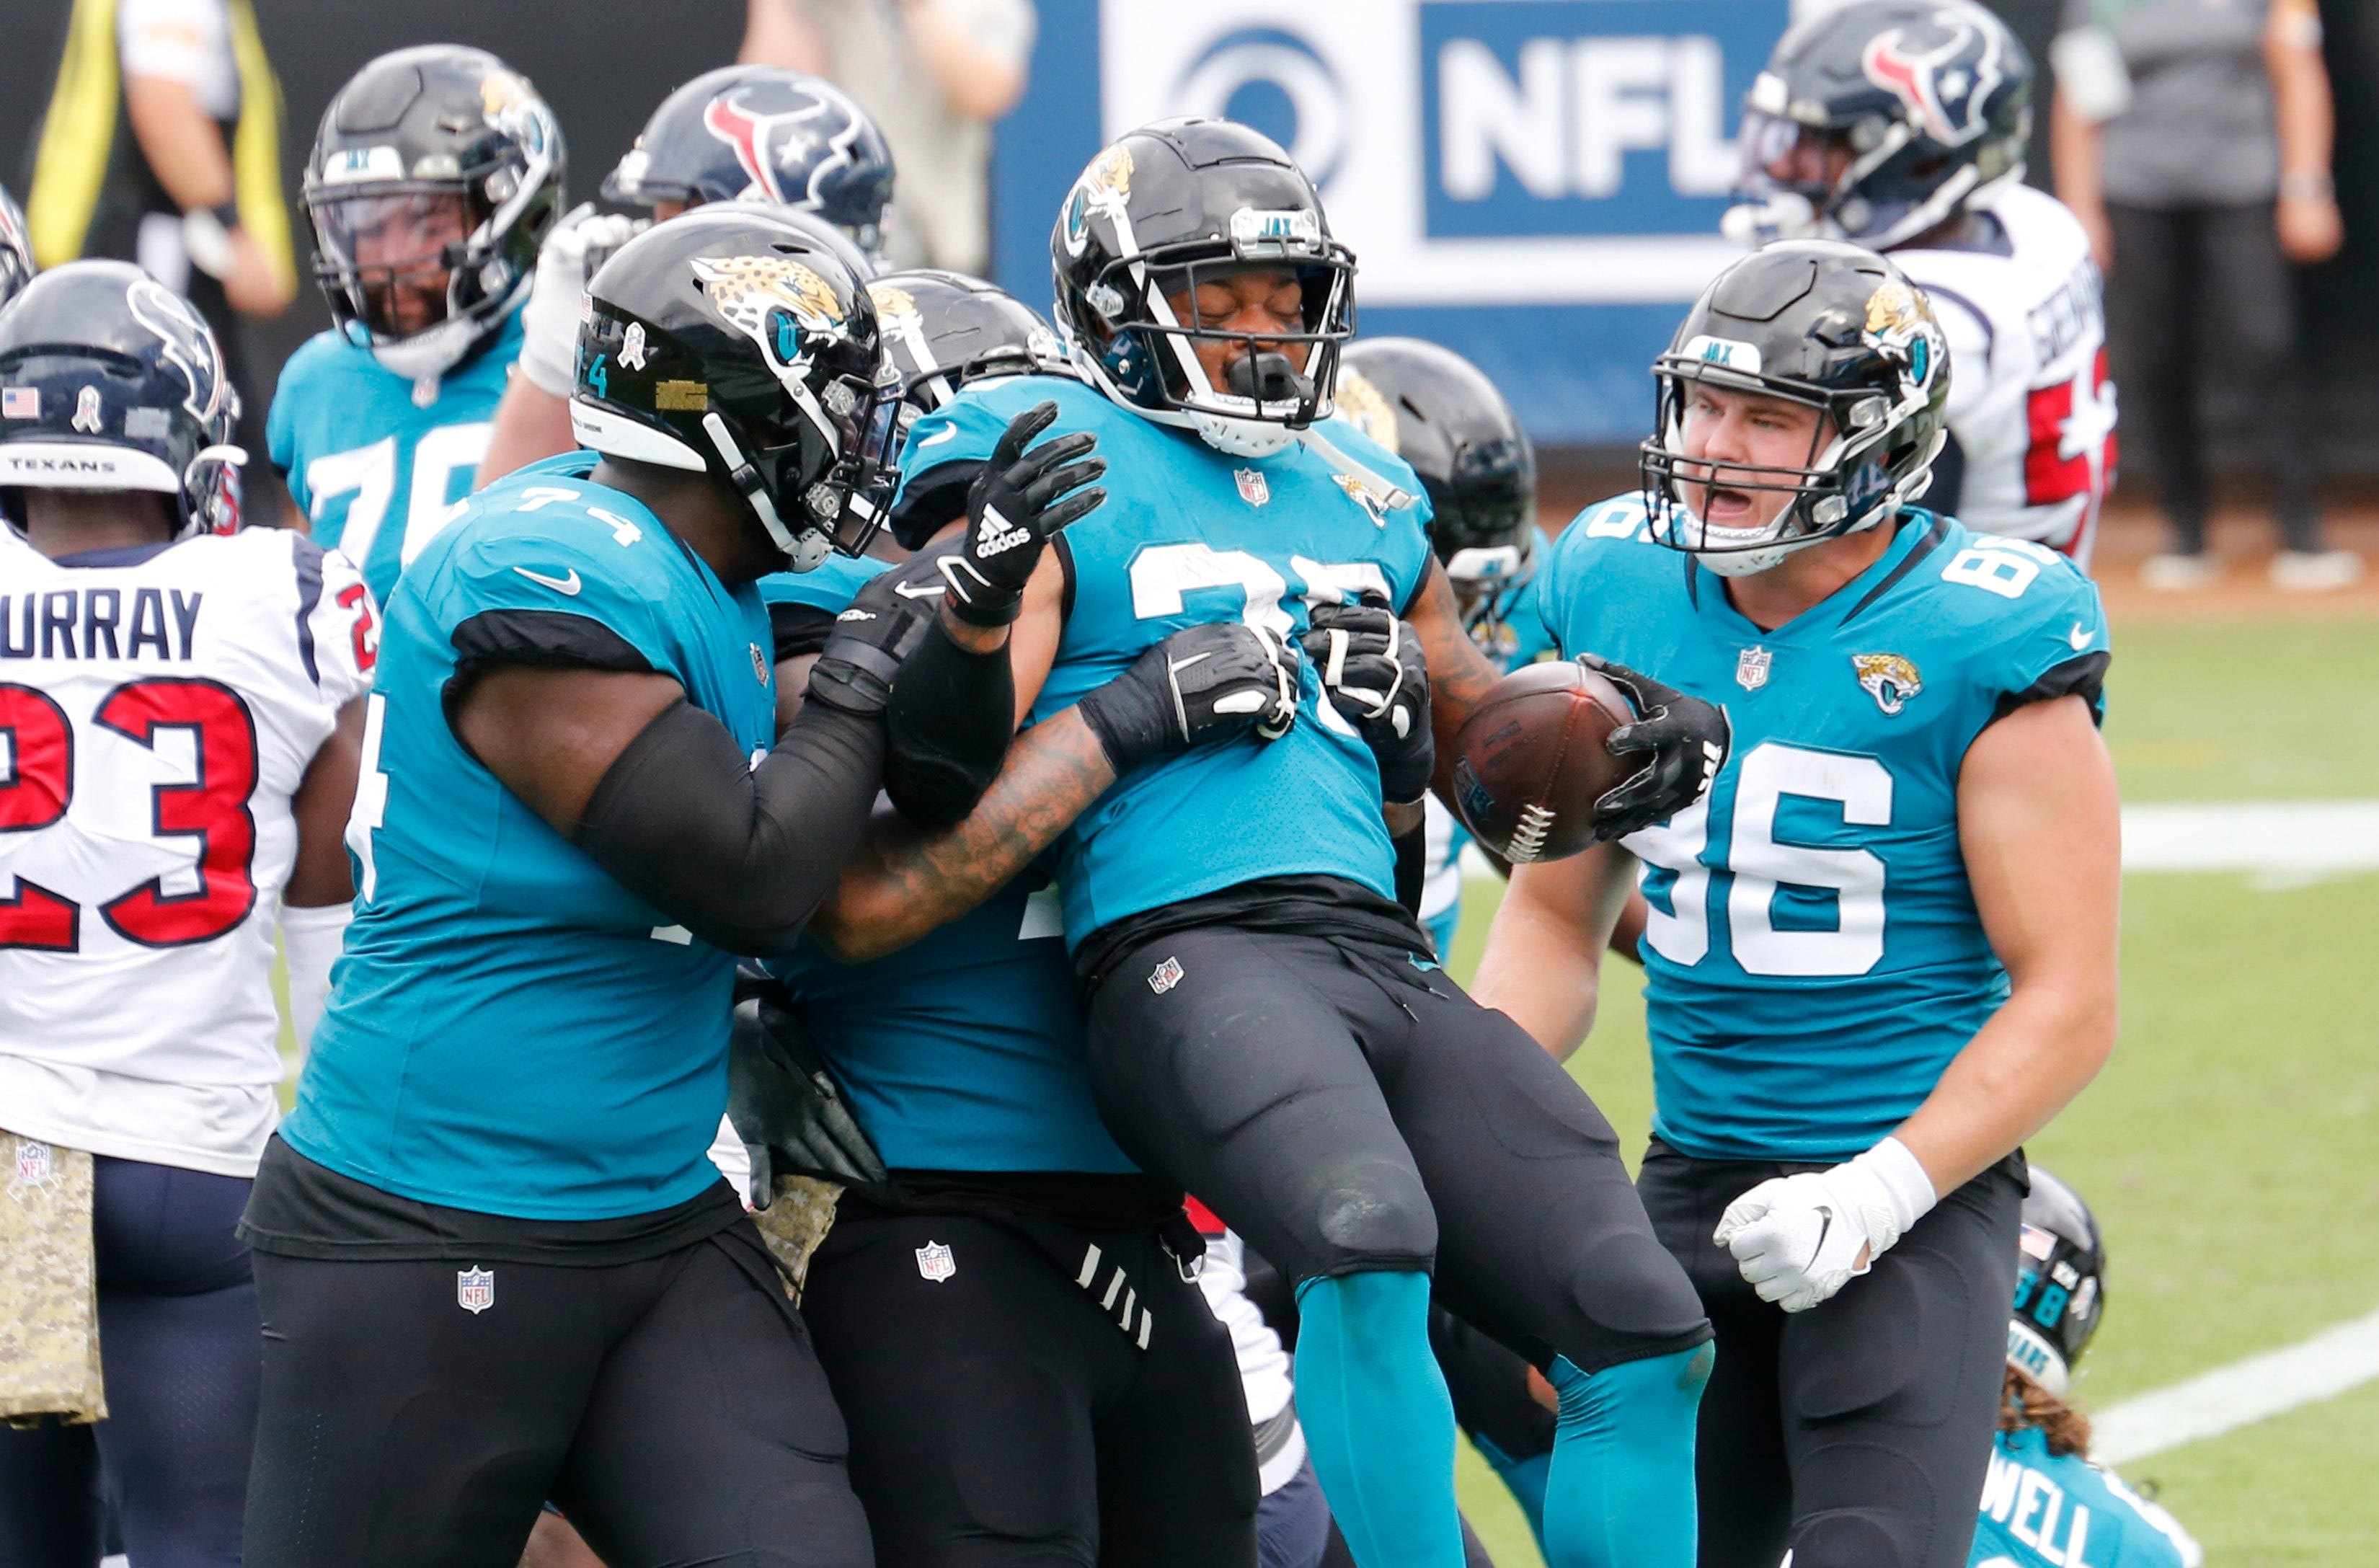 Jacksonville Jaguars reverting to teal as primary home jersey color